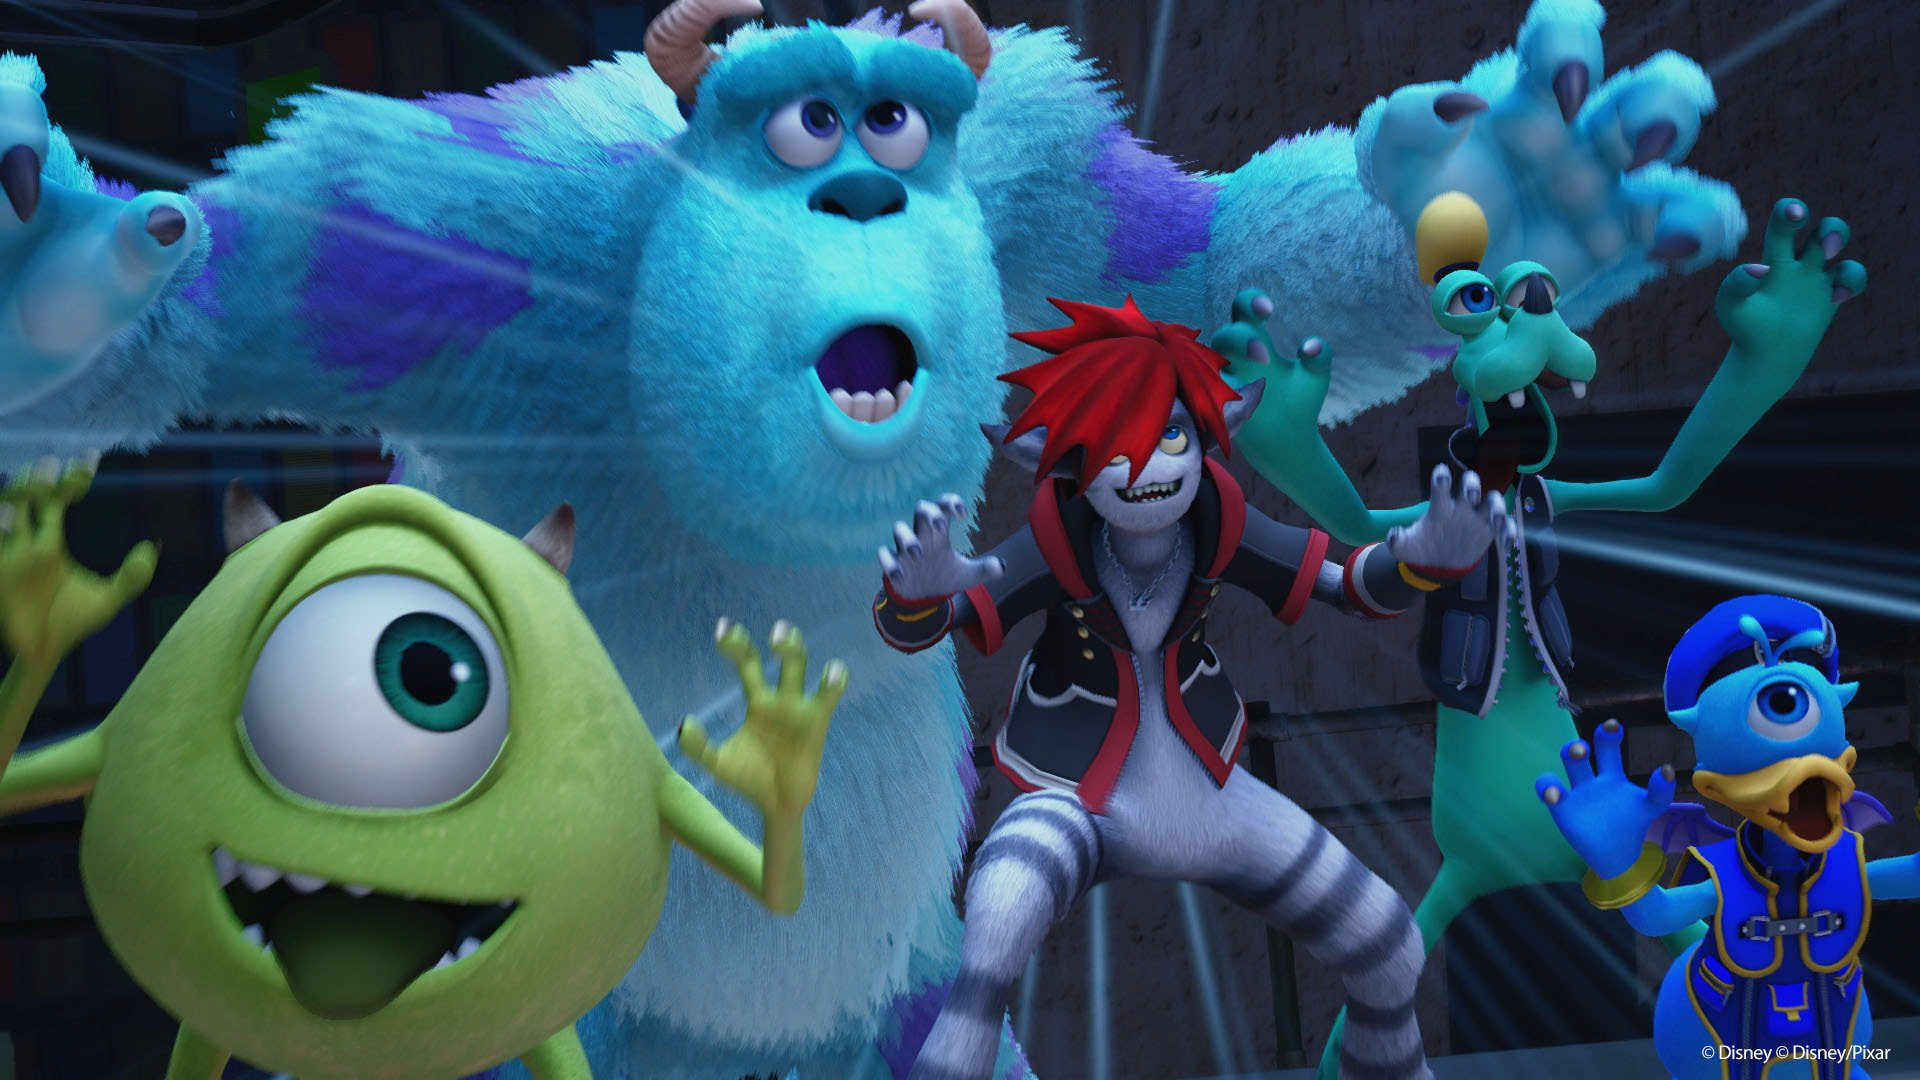 Kingdom Hearts III is owned by Square Enix and Disney / Pixar